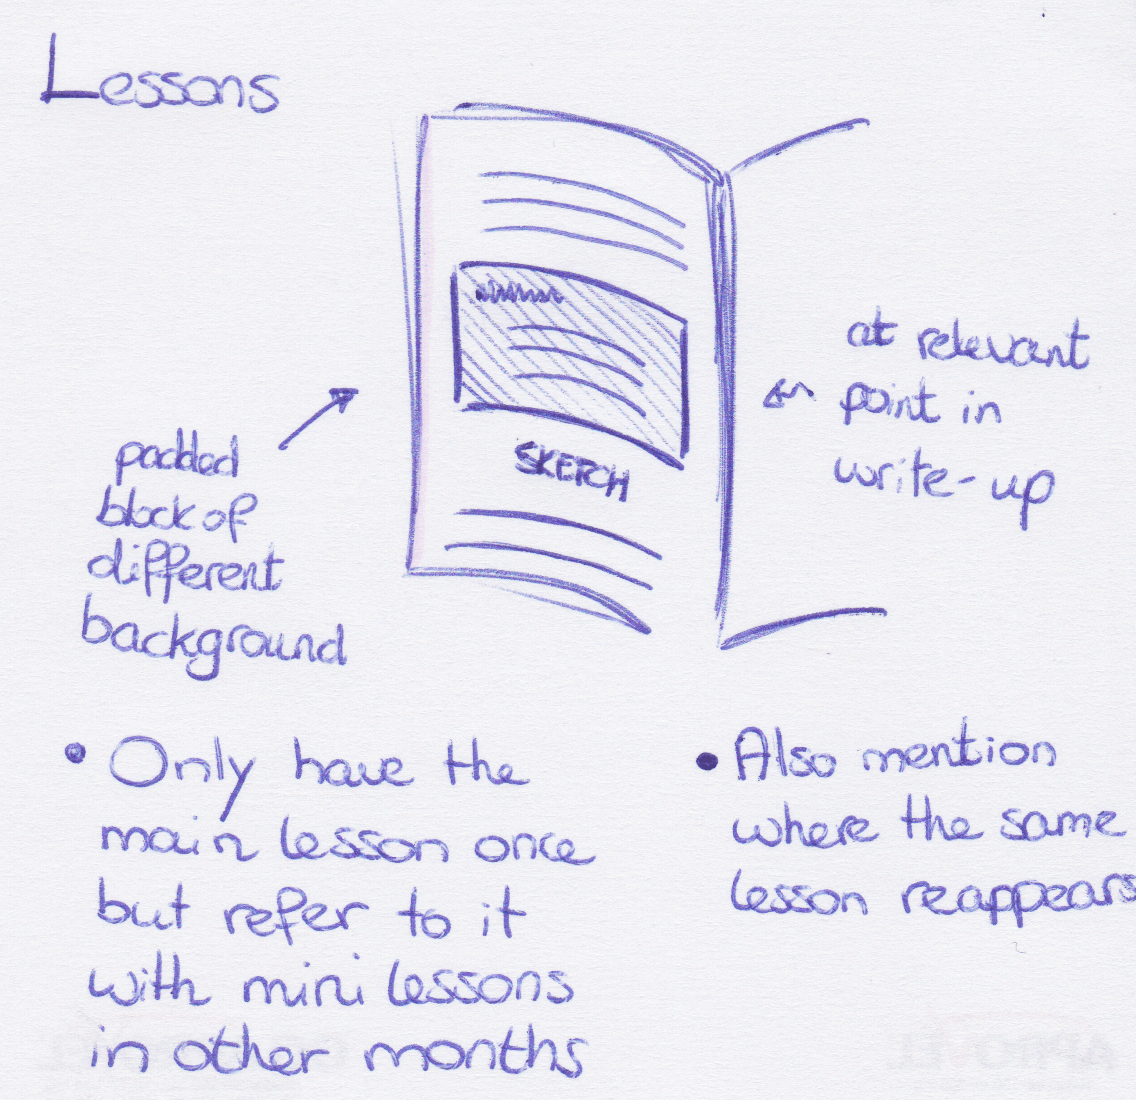 Data sketches - Lessons (within write-ups)